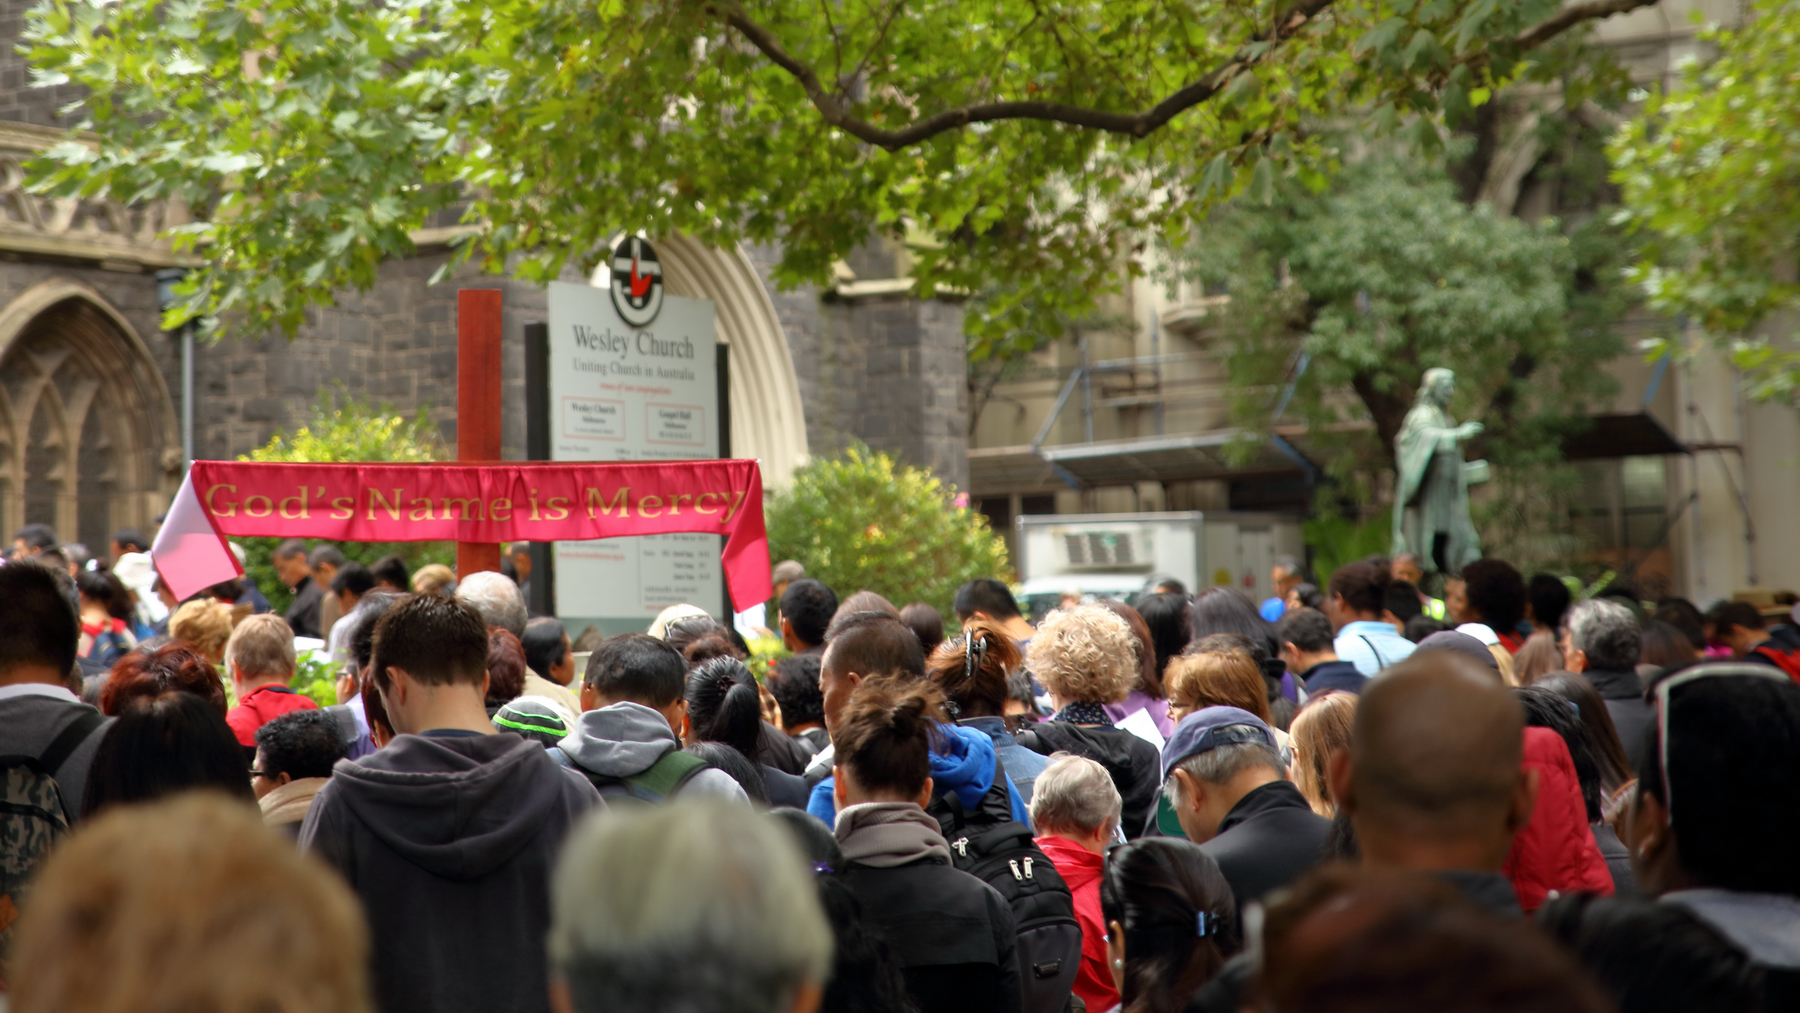 MCCIA Way of the Cross Wesley Uniting Church Melbourne Lonsdale Street